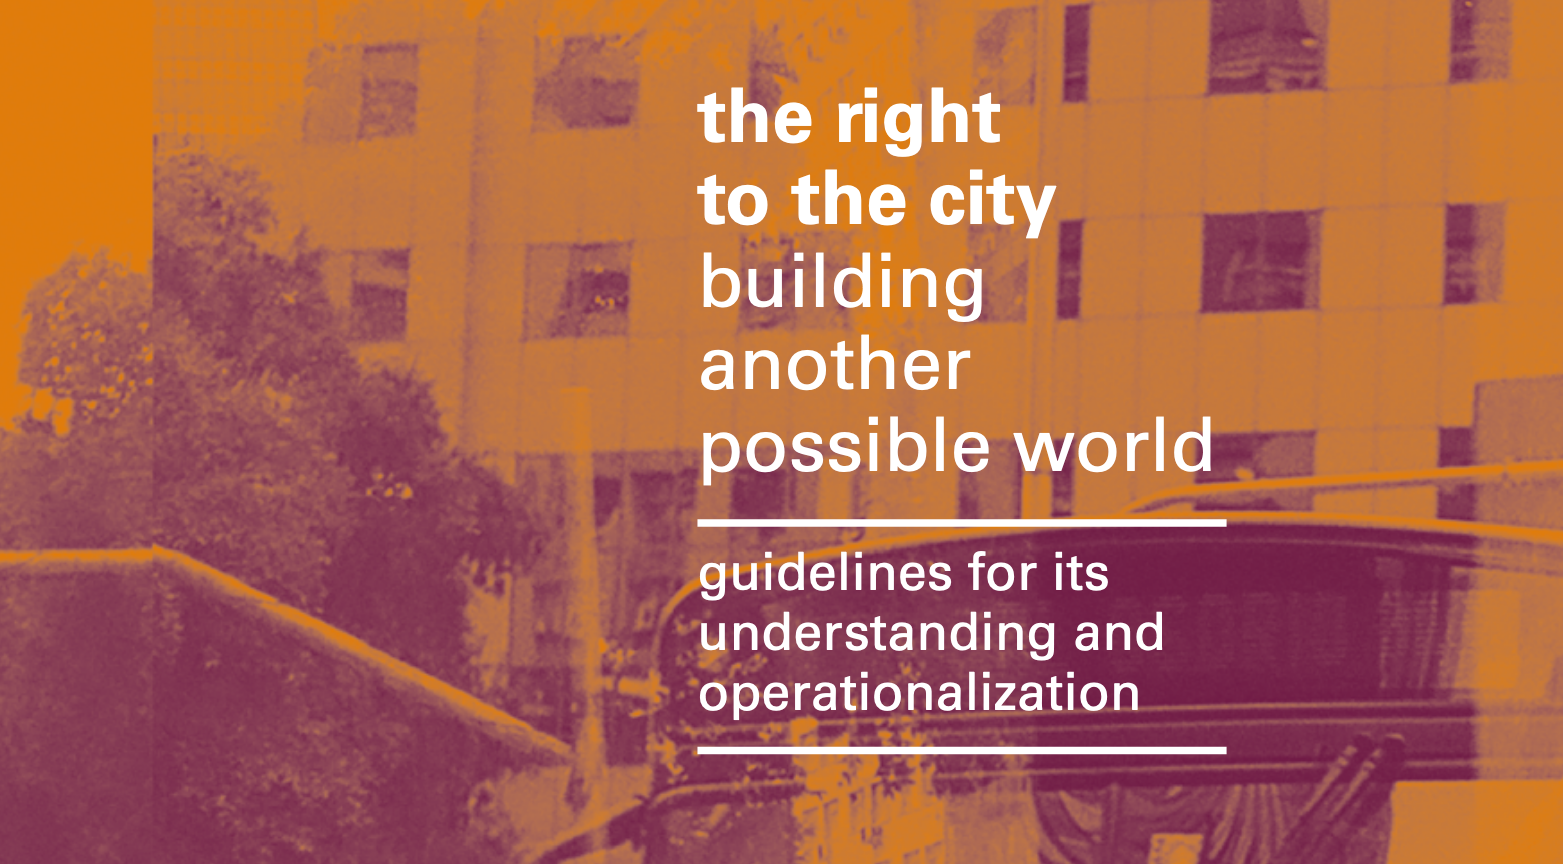 the right to the citybuilding another possible world